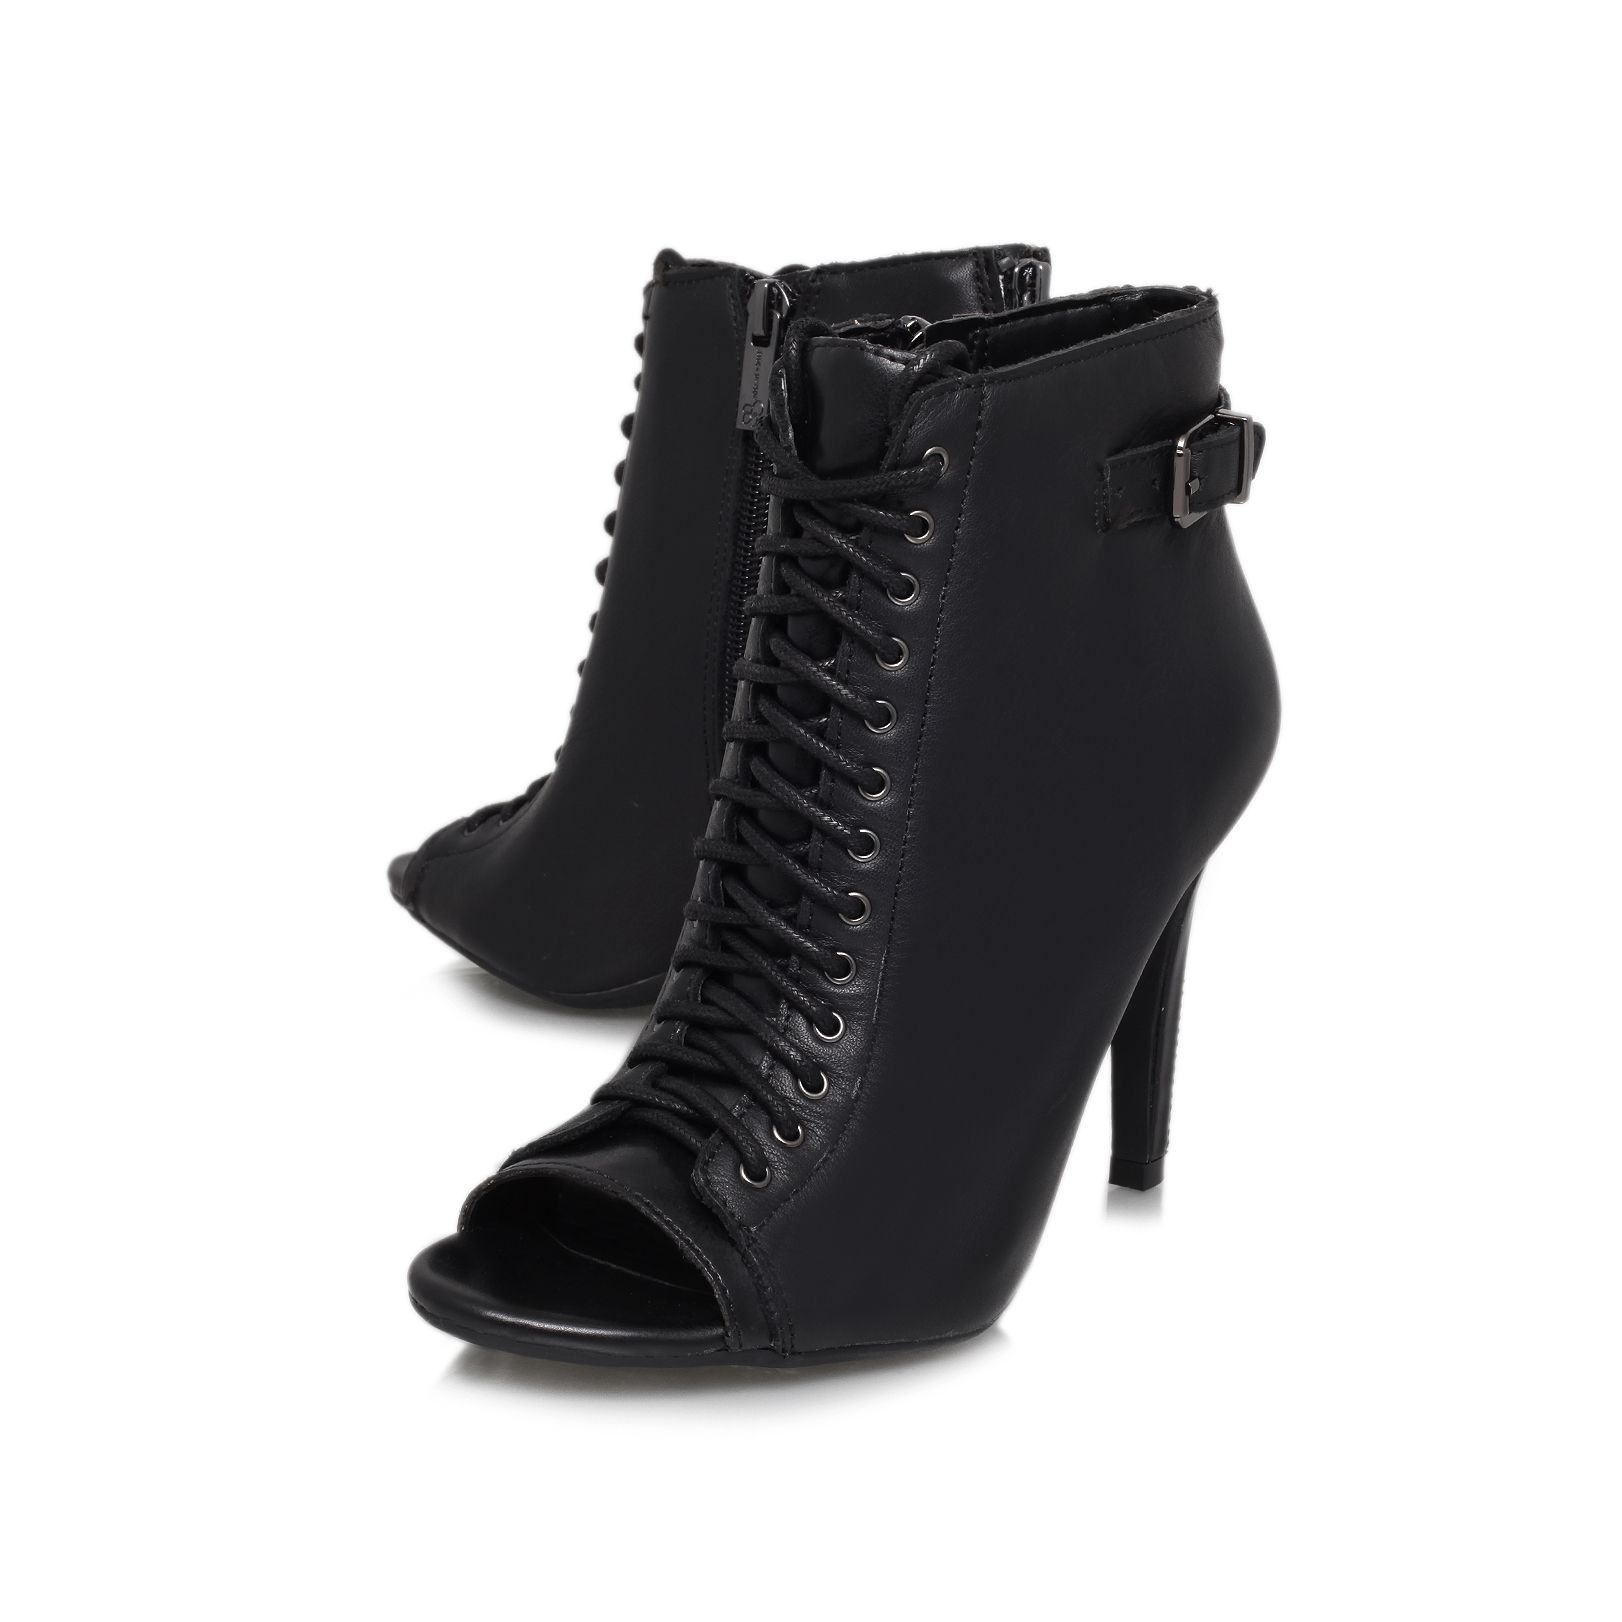 Jessica Simpson Synthetic Erlene High Heeled Boots in Black